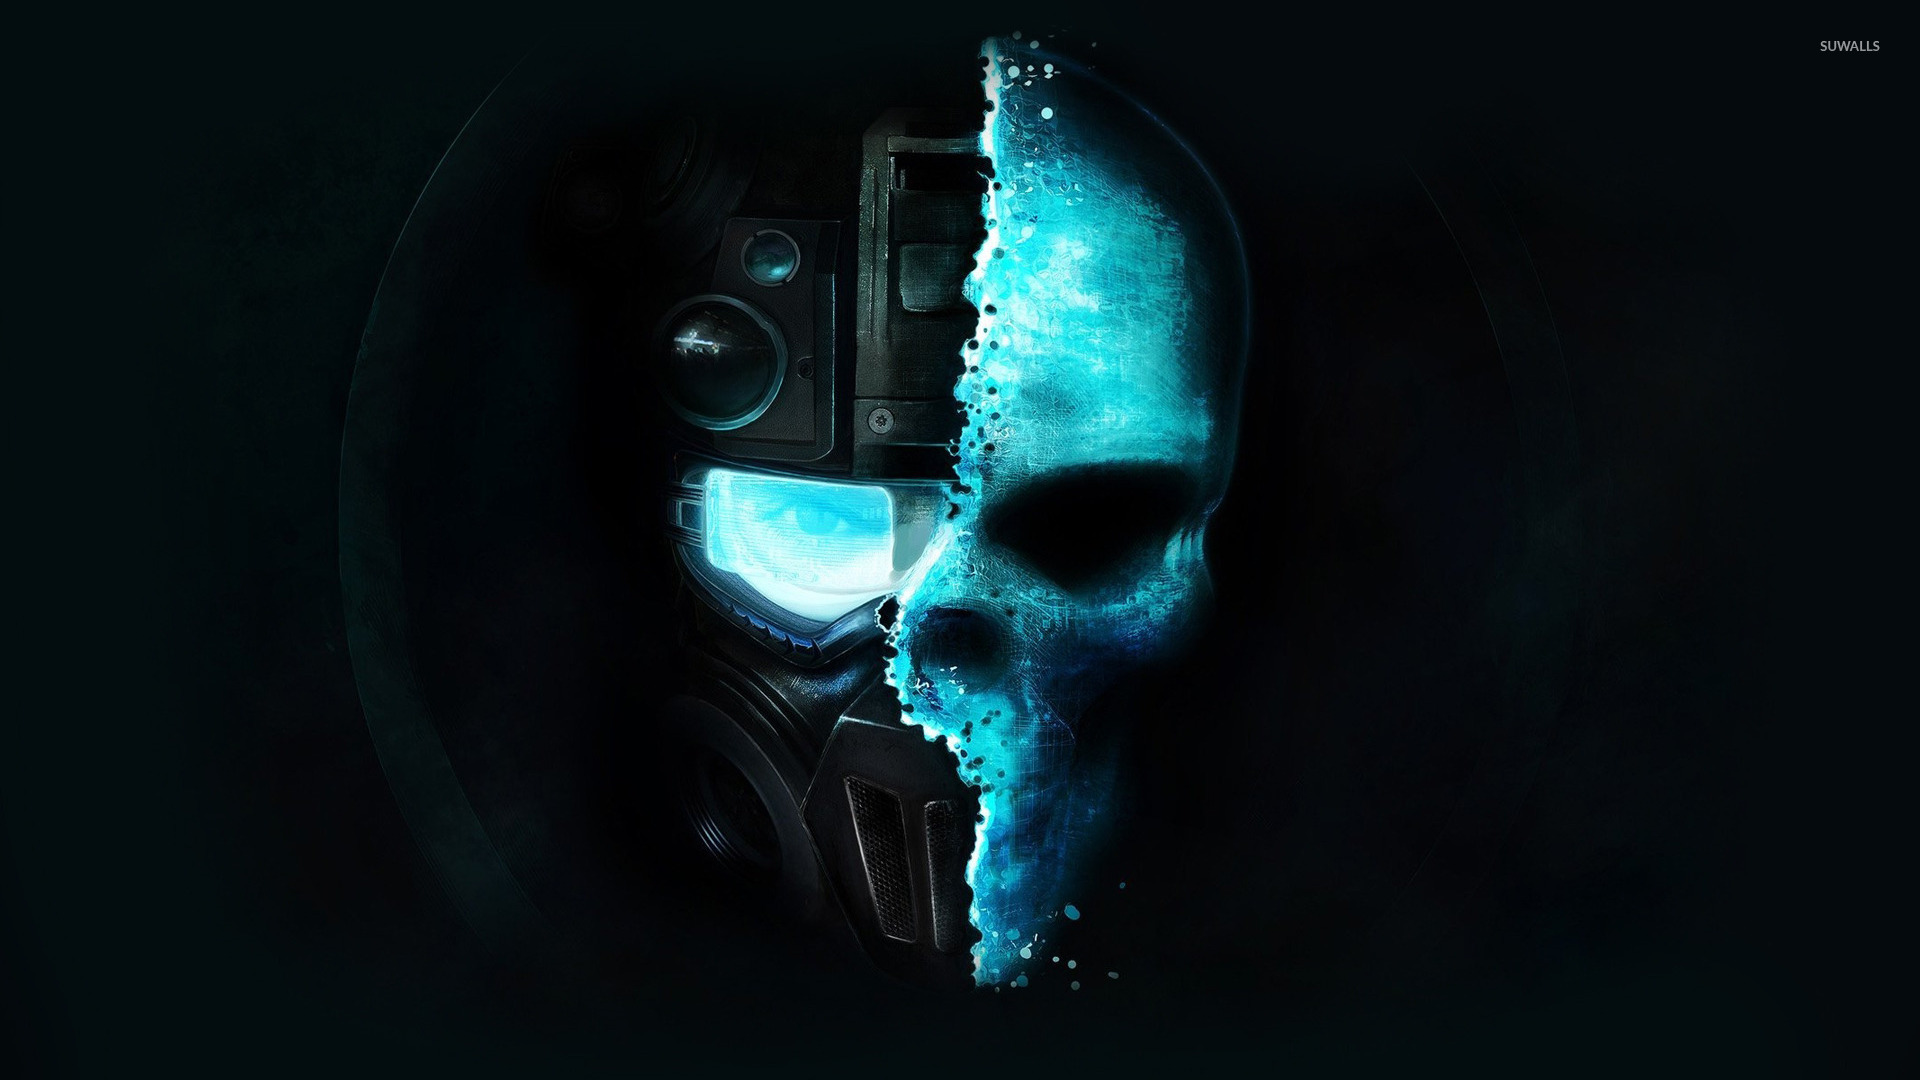 Tom Clancys Ghost Recon Artwork Wallpapers HD Walls 1920x1080